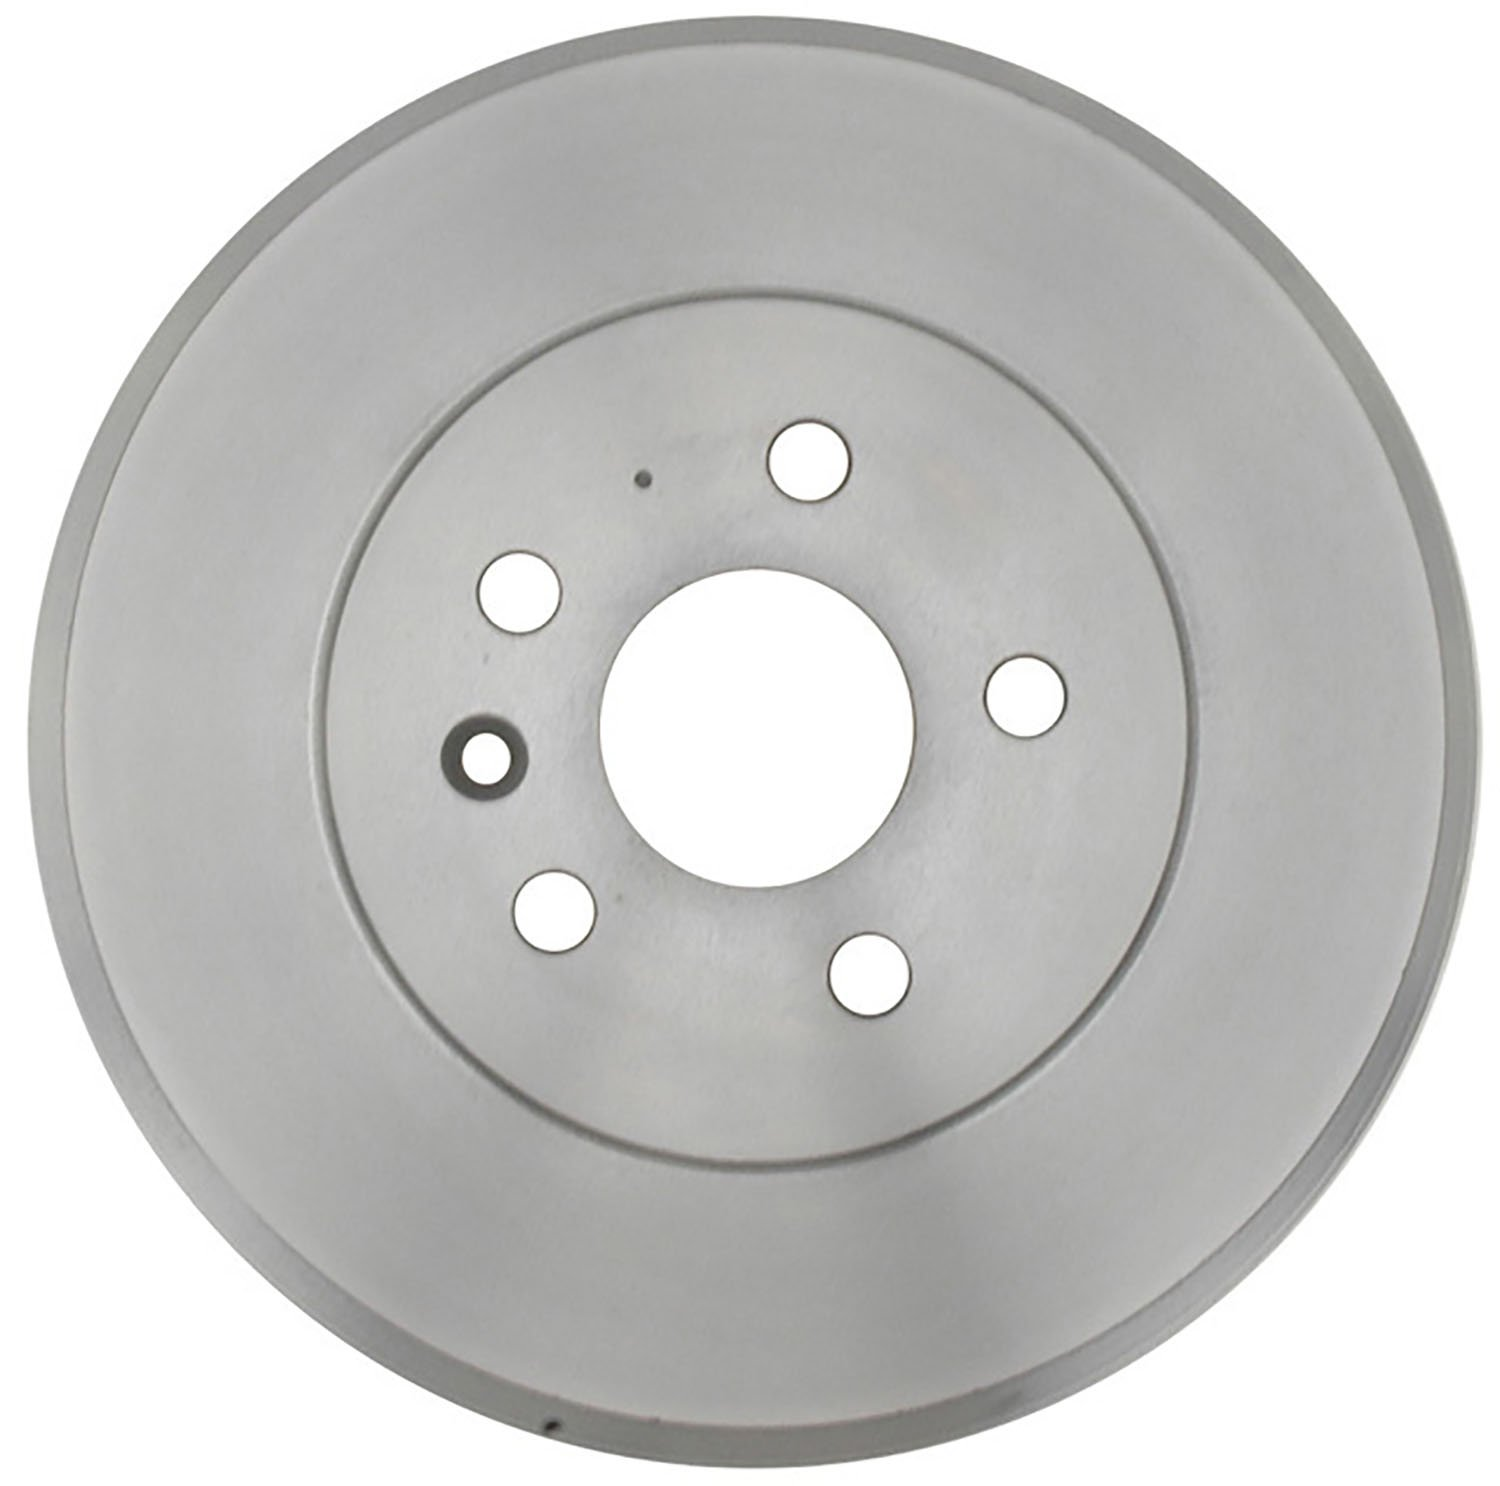 ACDelco 18B601 Professional Durastop Rear Brake Drum